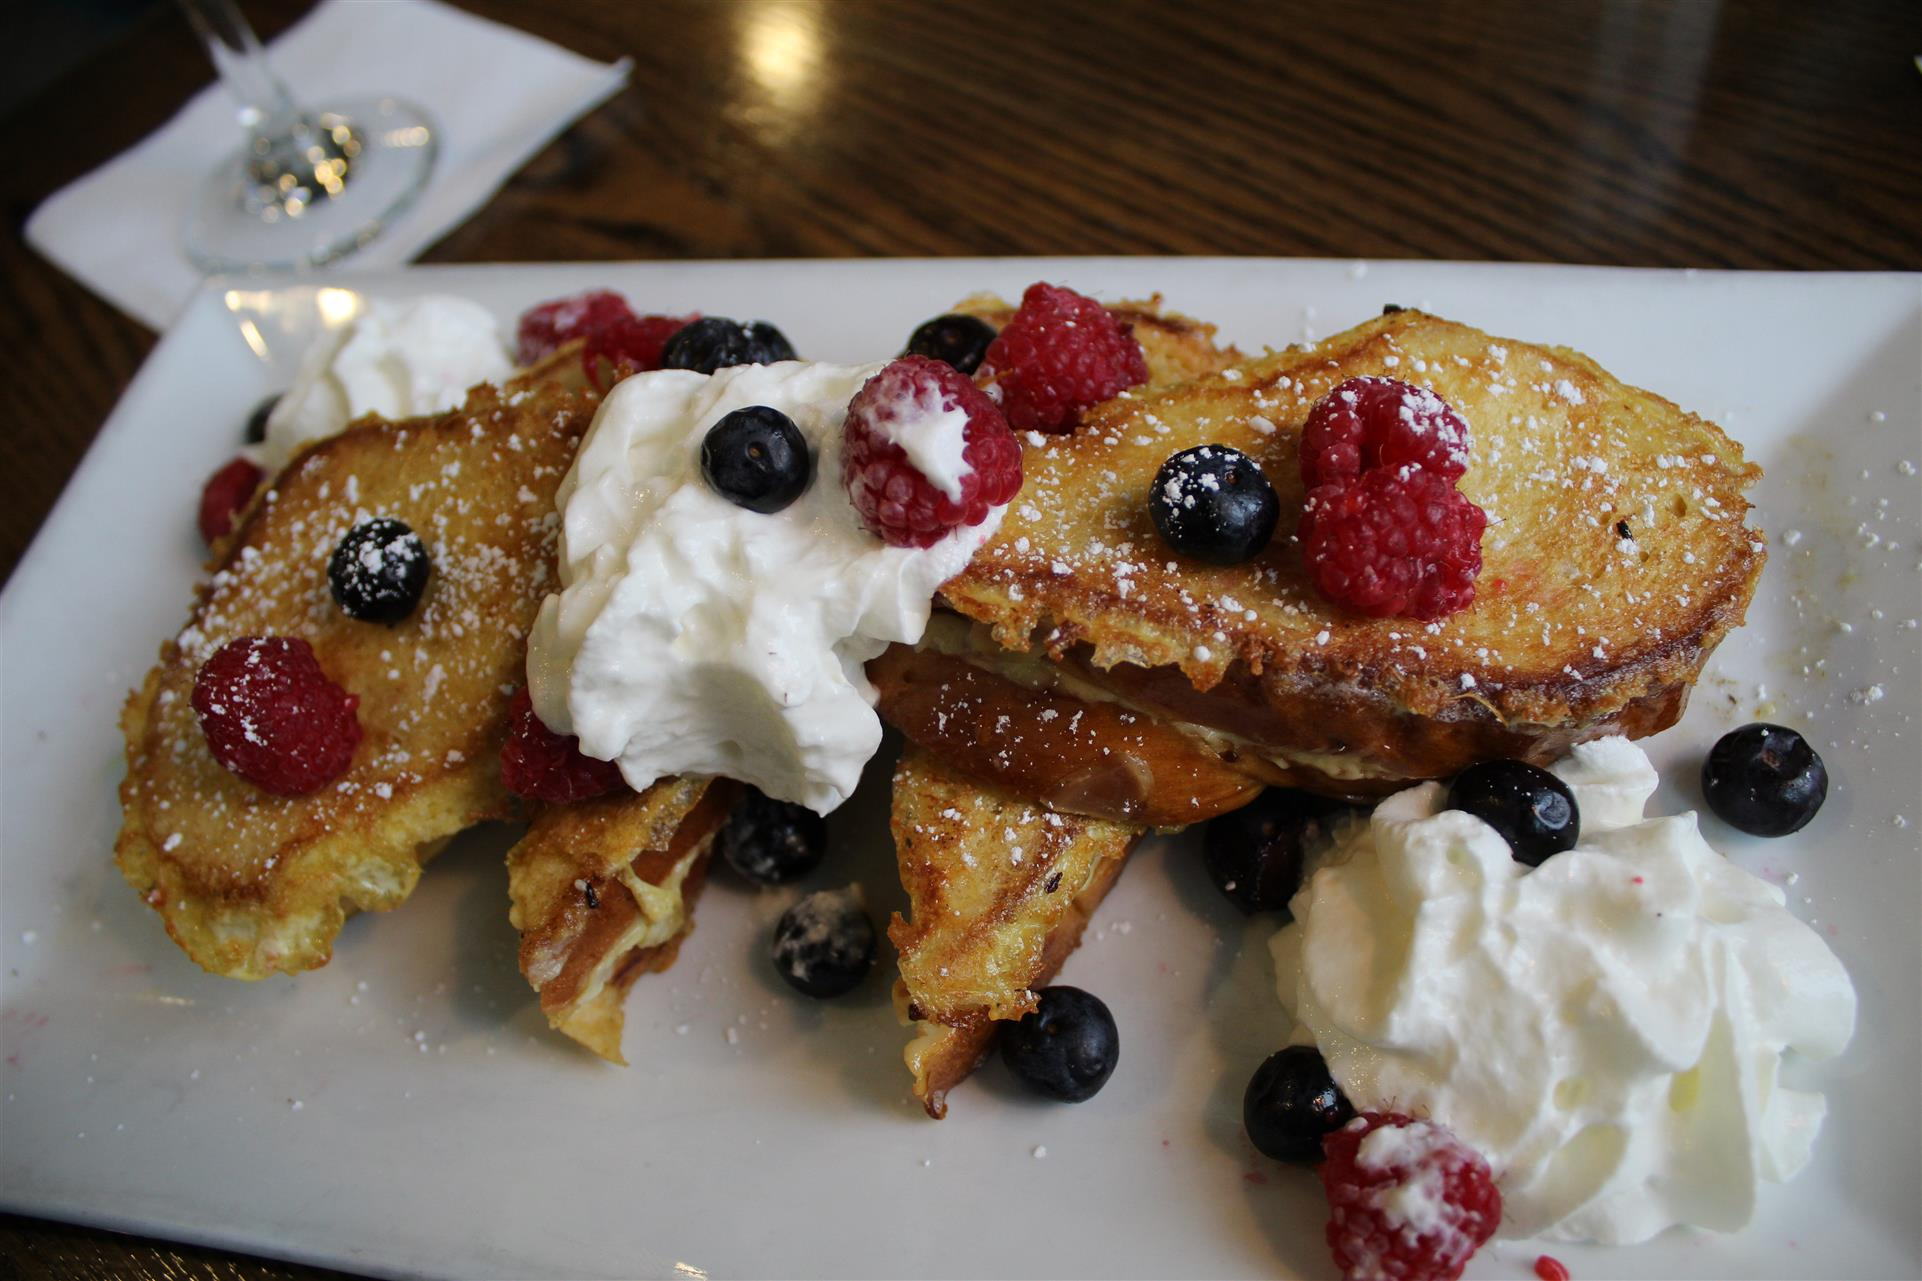 close up of french toast with whipped cream, raspberries and blueberries